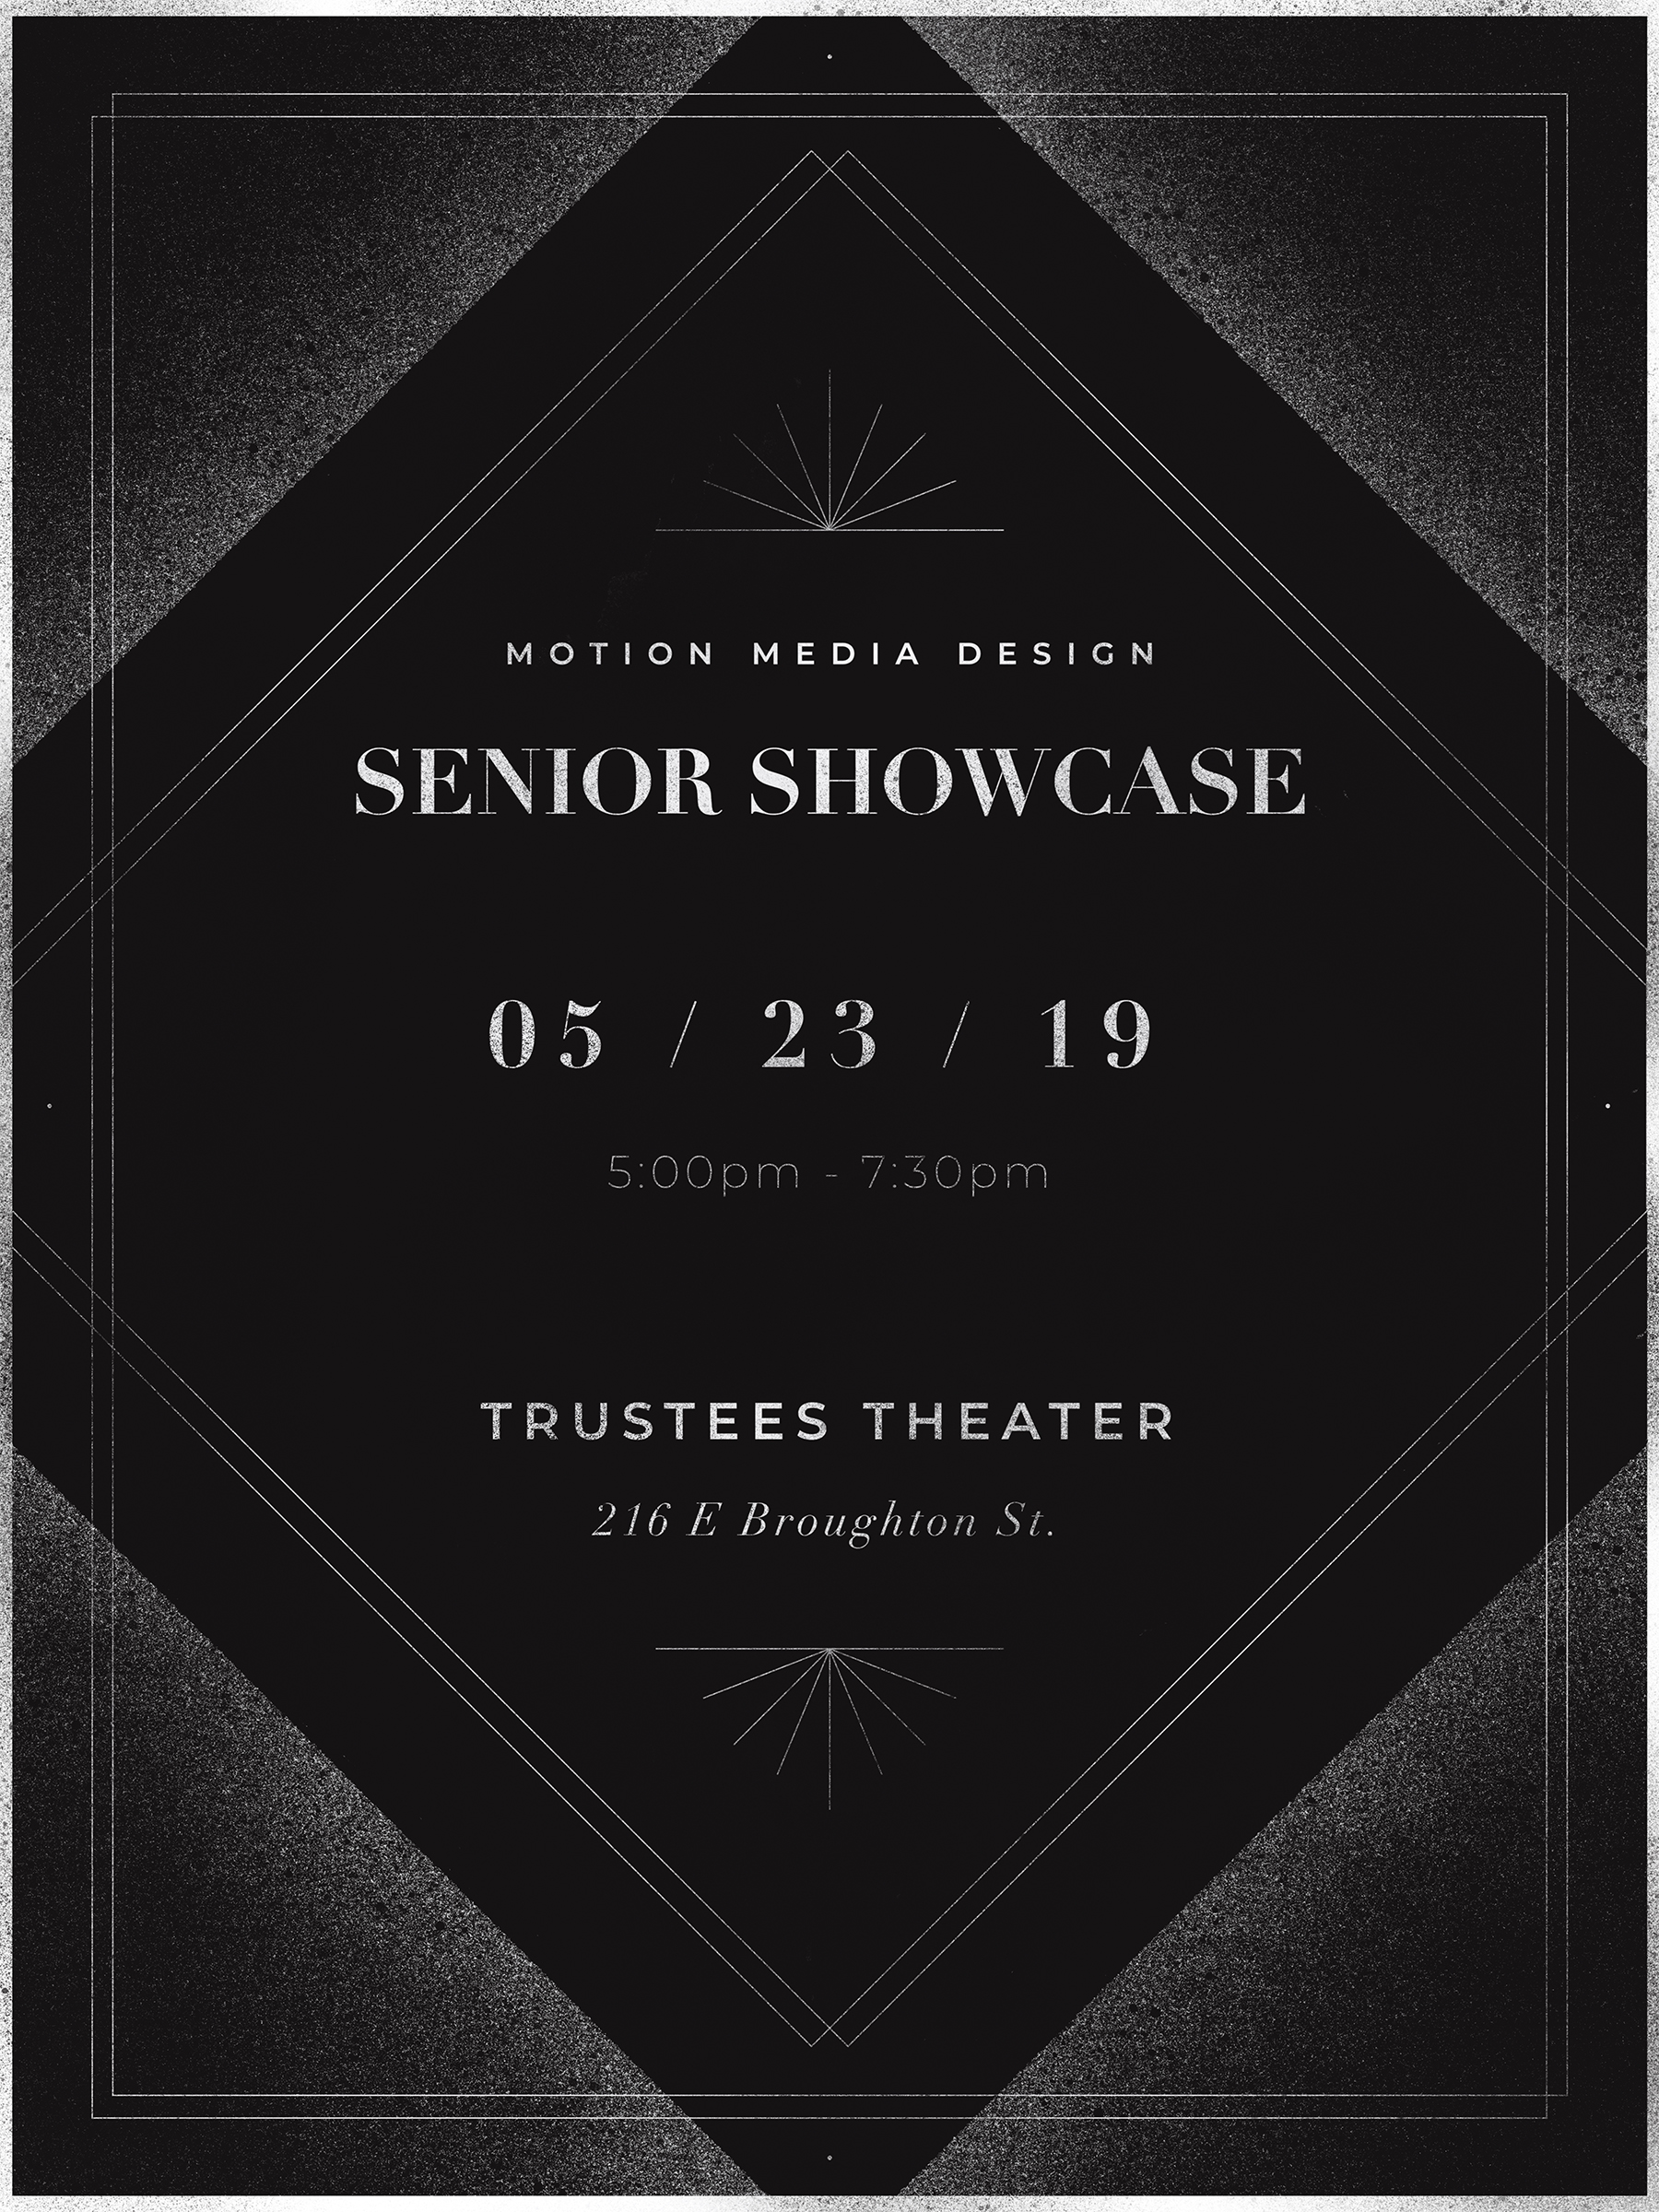 Motion Media Design – Senior Showcase